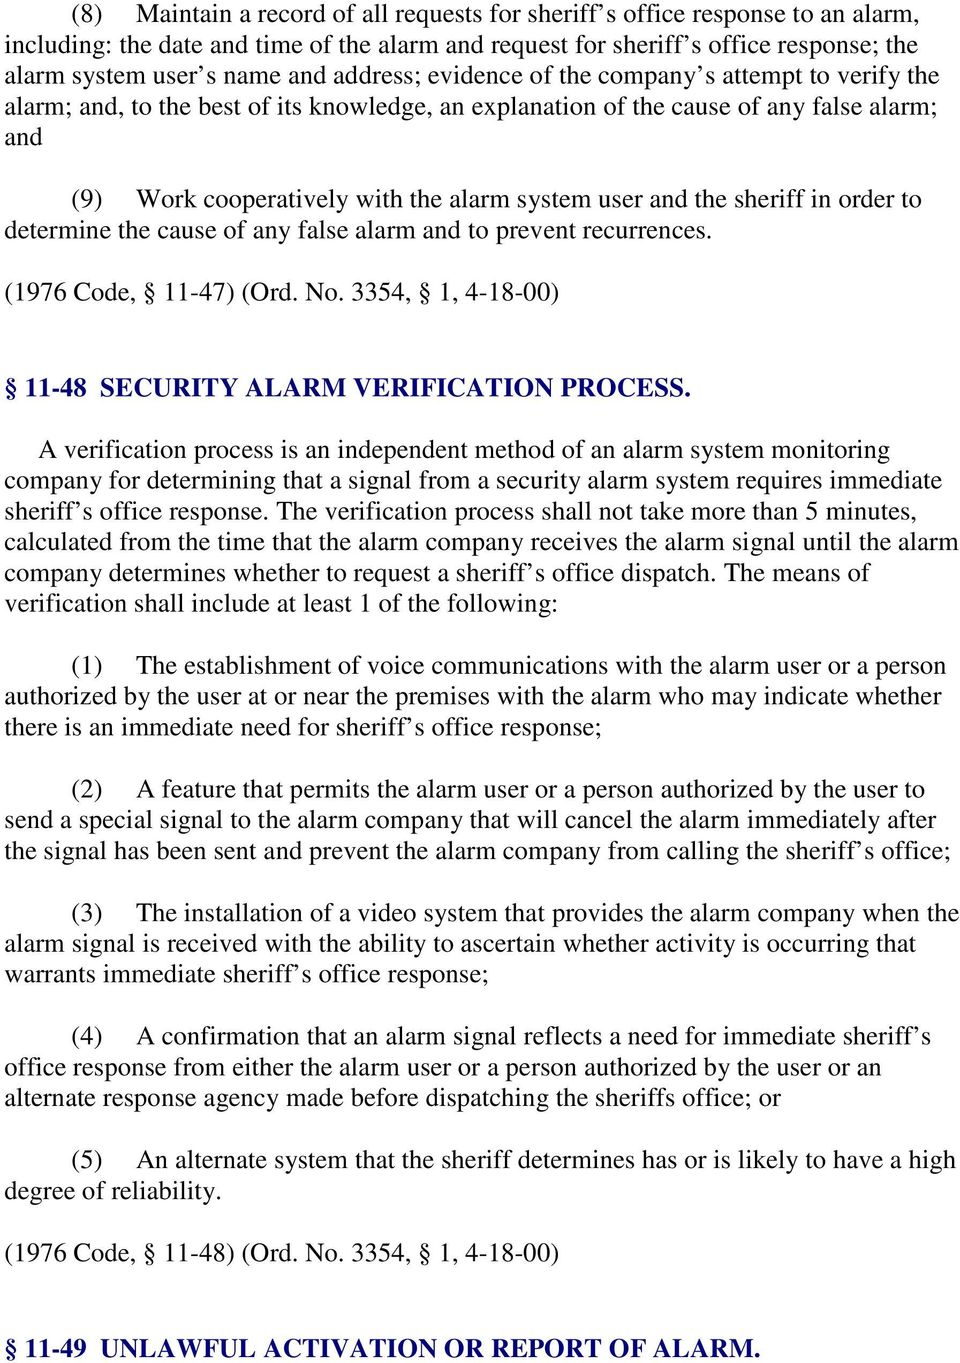 user and the sheriff in order to determine the cause of any false alarm and to prevent recurrences. (1976 Code, 11-47) (Ord. No. 3354, 1, 4-18-00) 11-48 SECURITY ALARM VERIFICATION PROCESS.